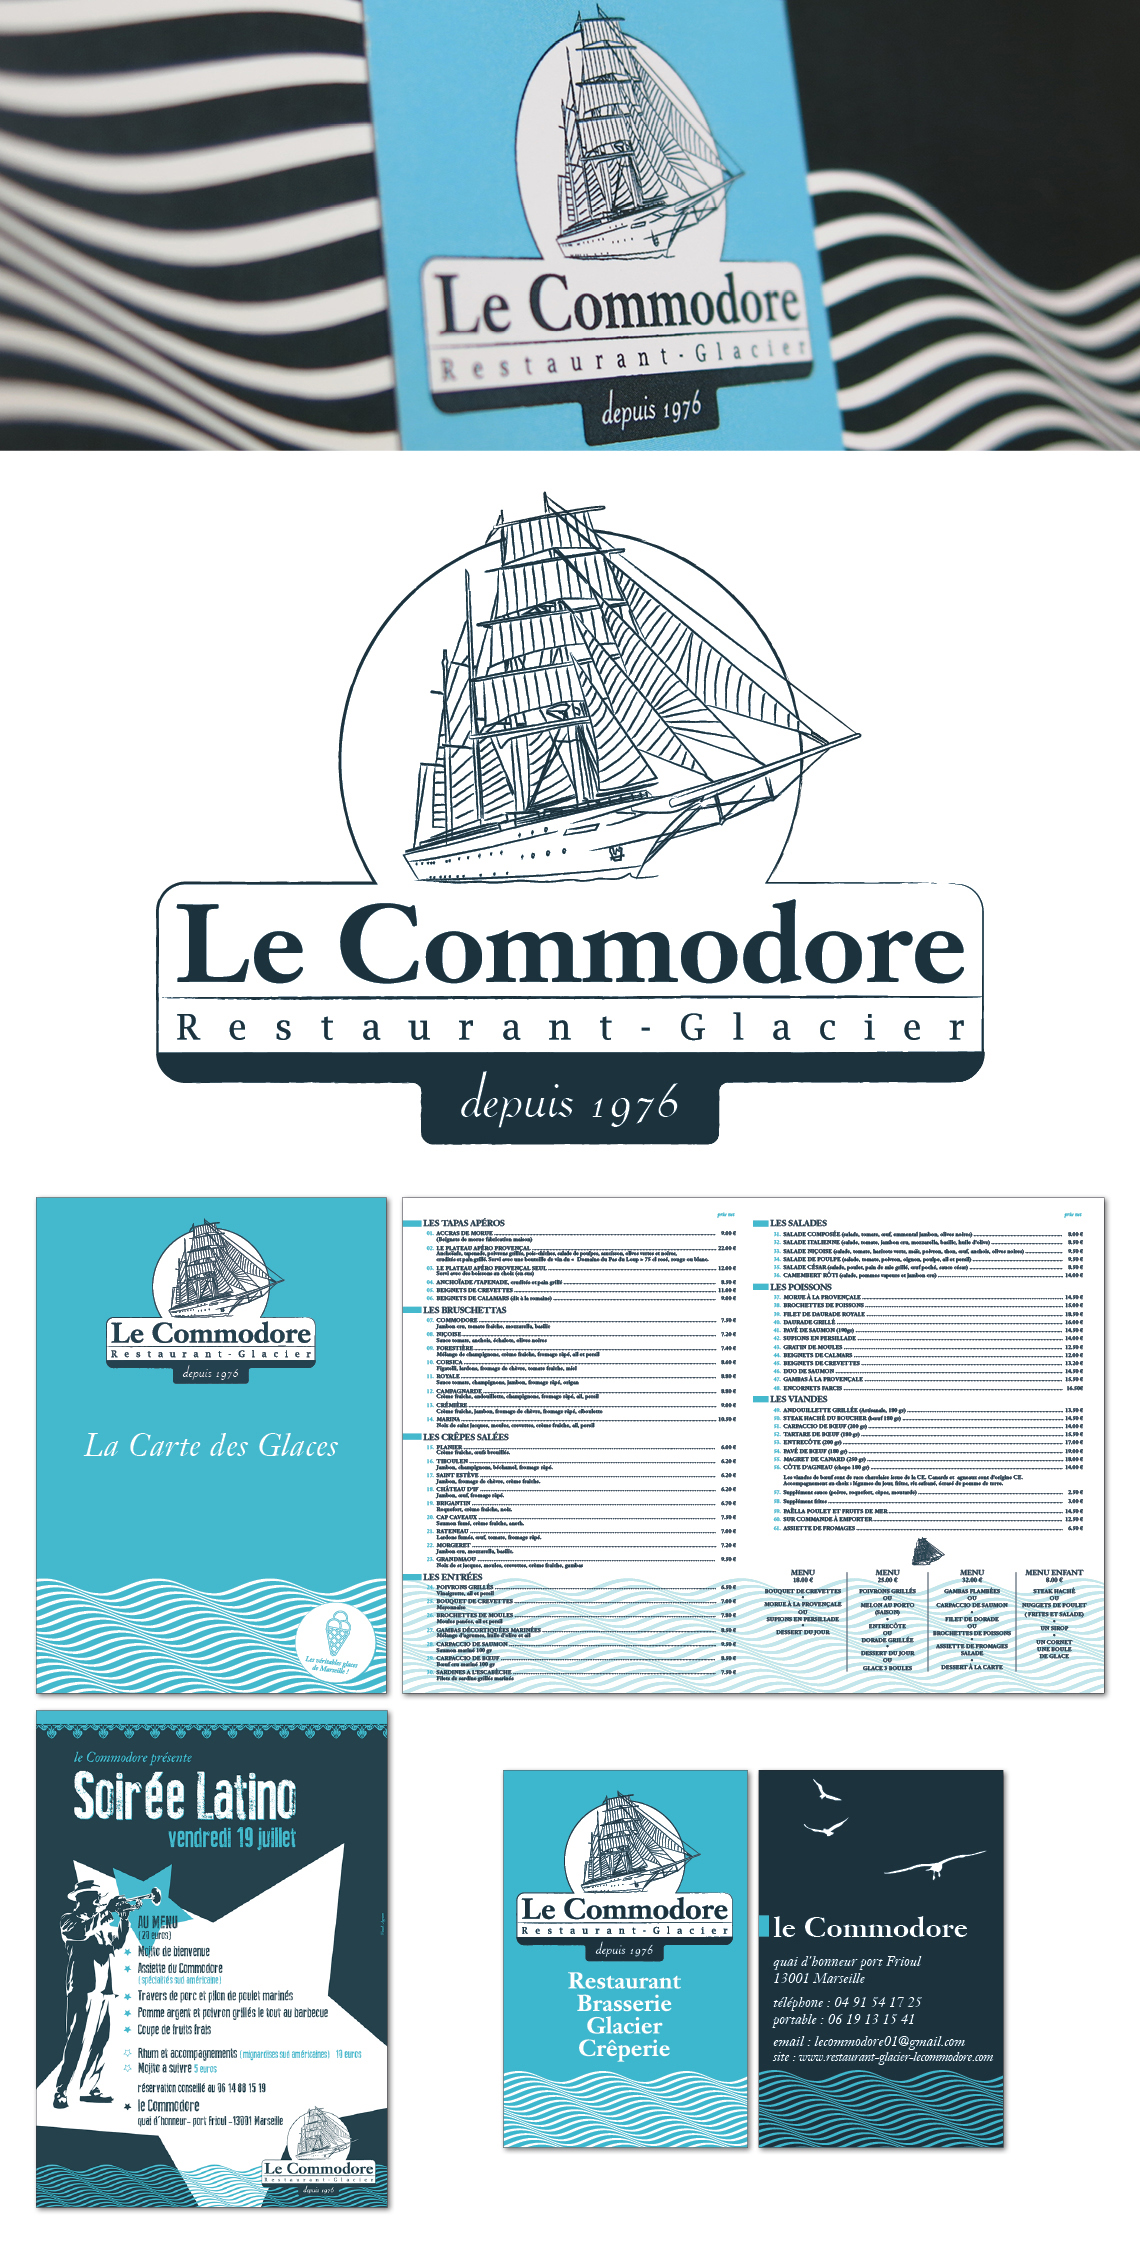 Le Commodore, restaurant-glacier